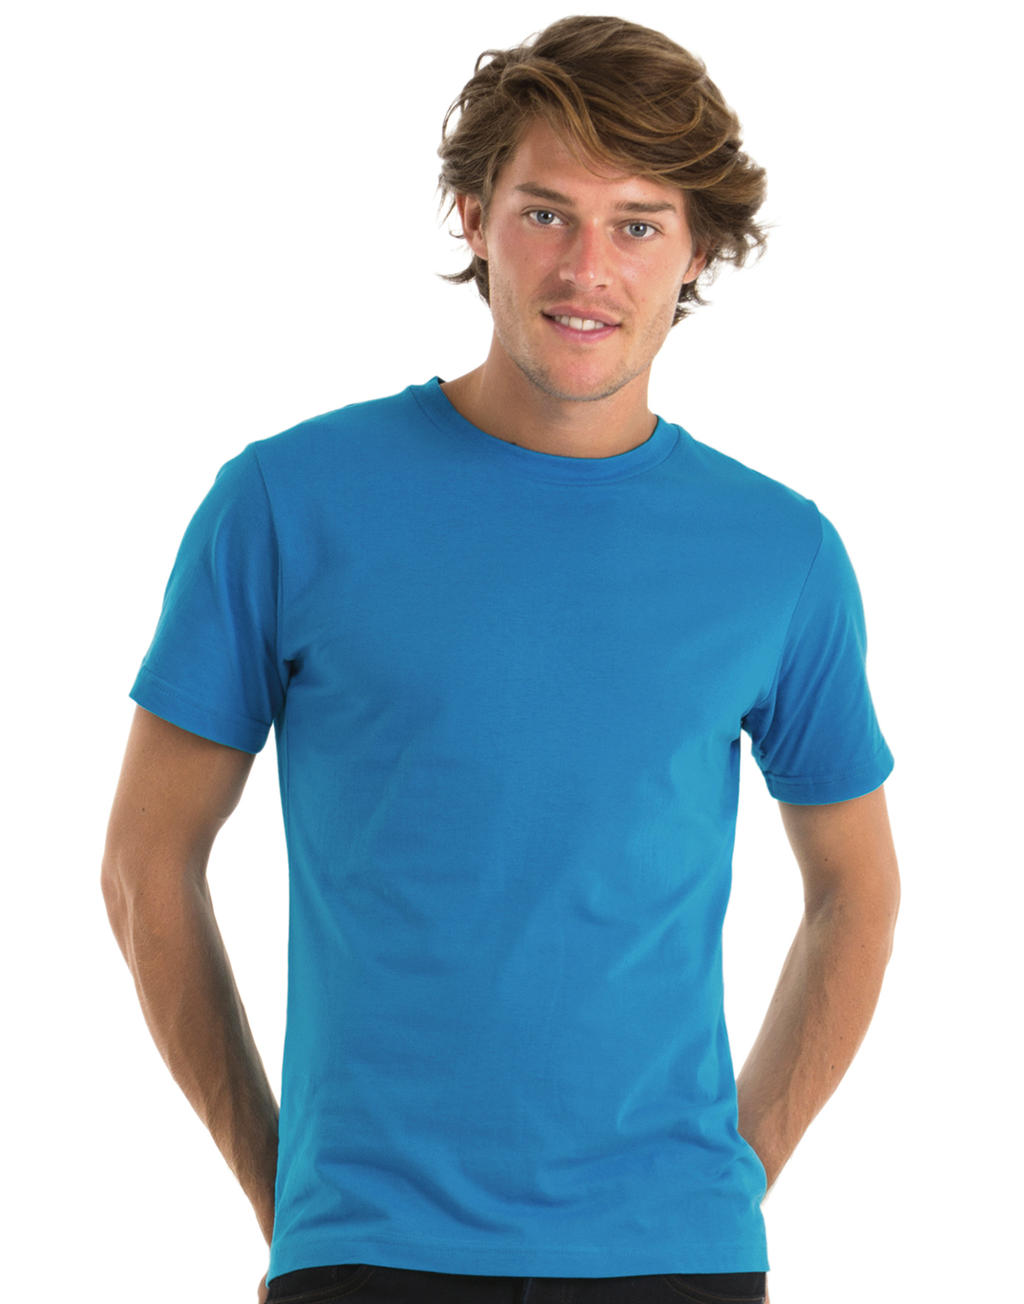 Coupe Ajustée T Shirts Personnalisable Men Only T Shirt Coupe Ajustée B C